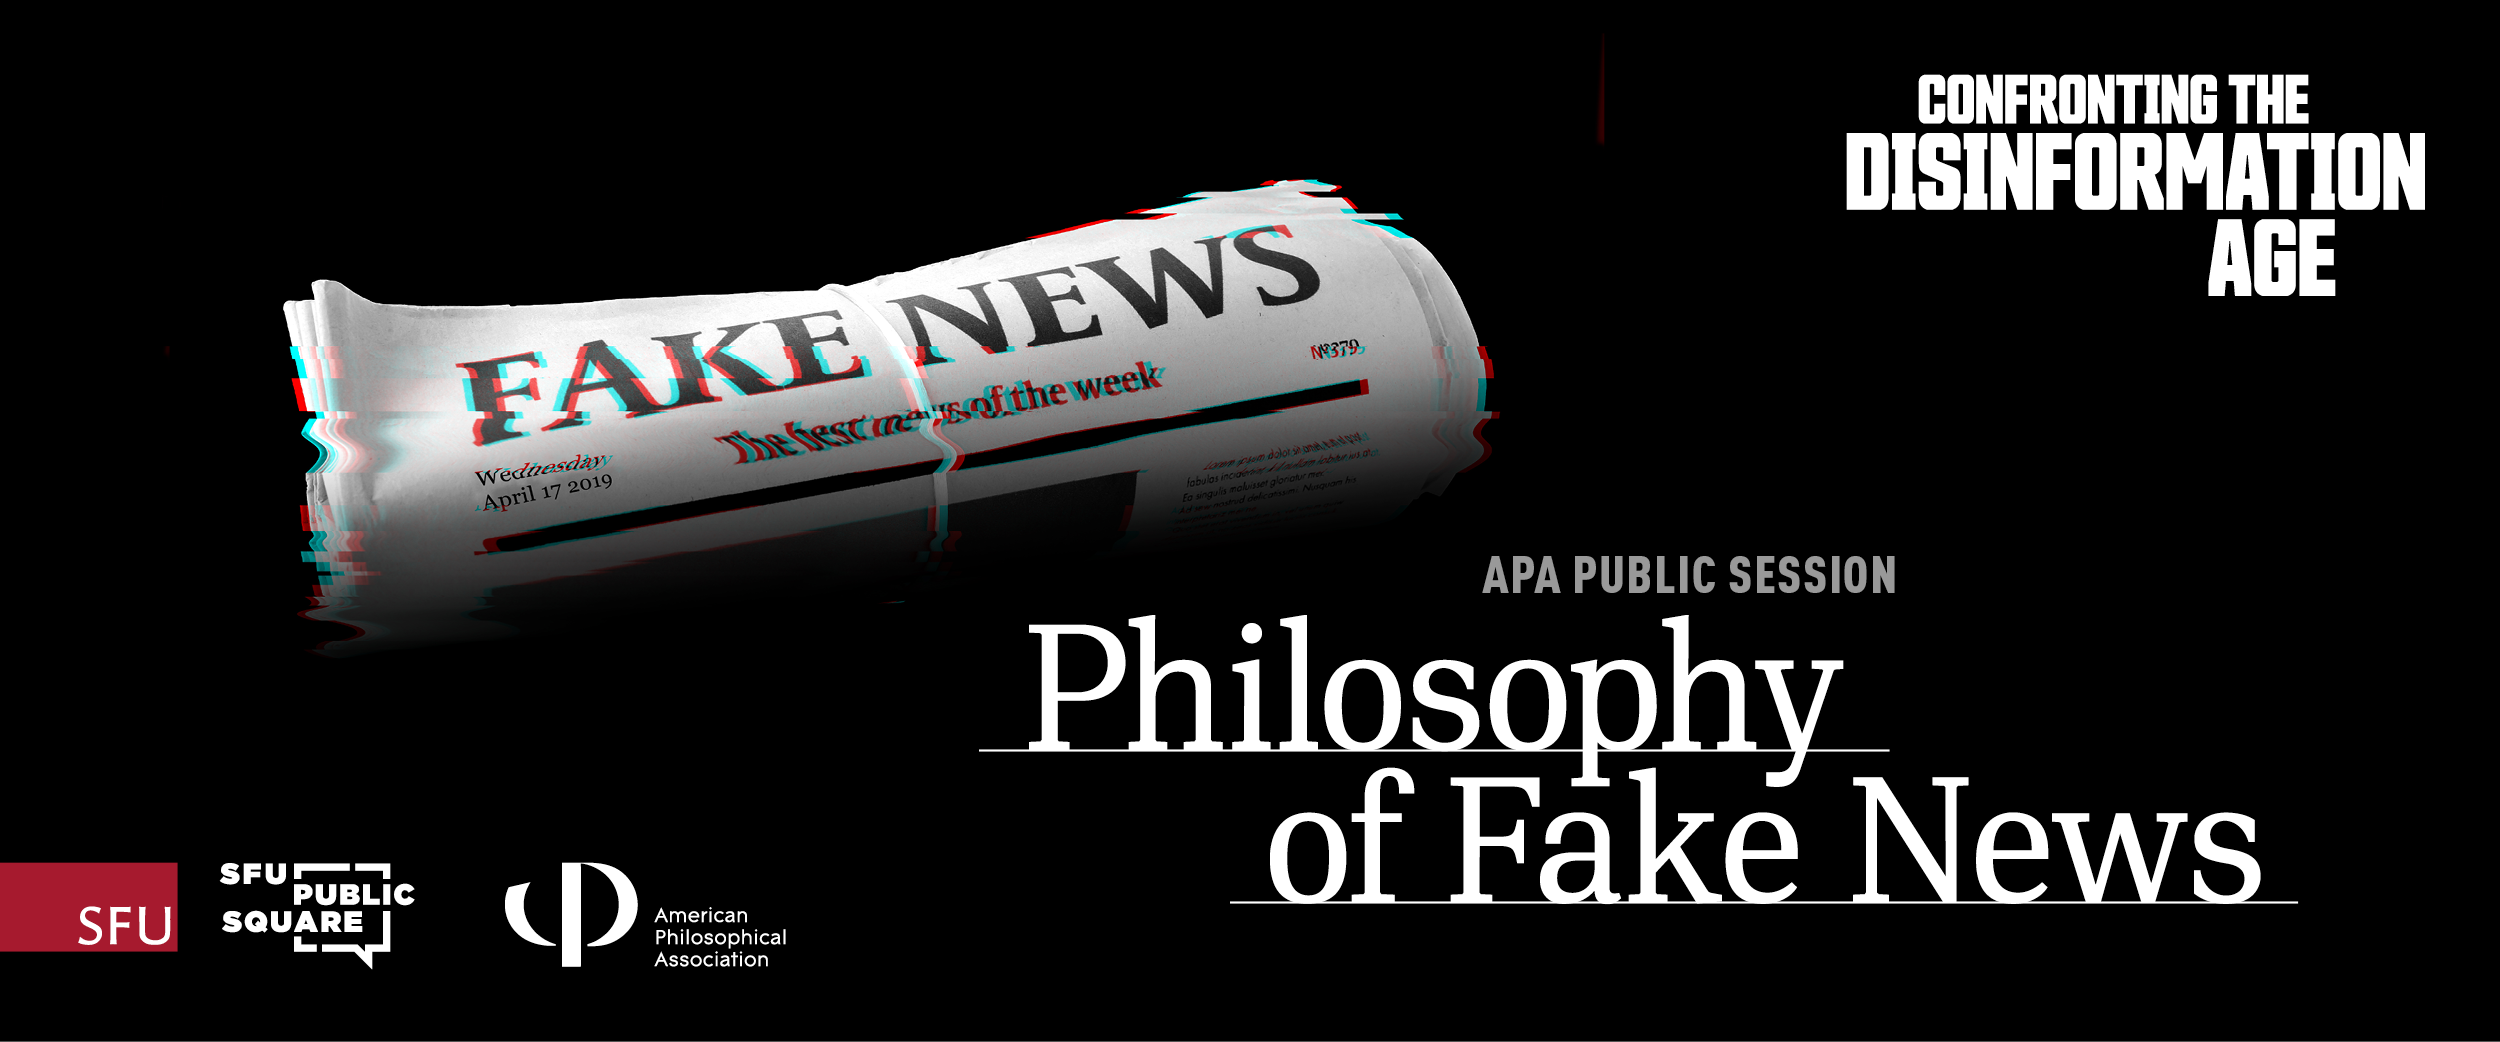 APA Public Session: Philosophy of Fake News. Part of the SFU Public Square summit: Confronting the Disinformation Age.